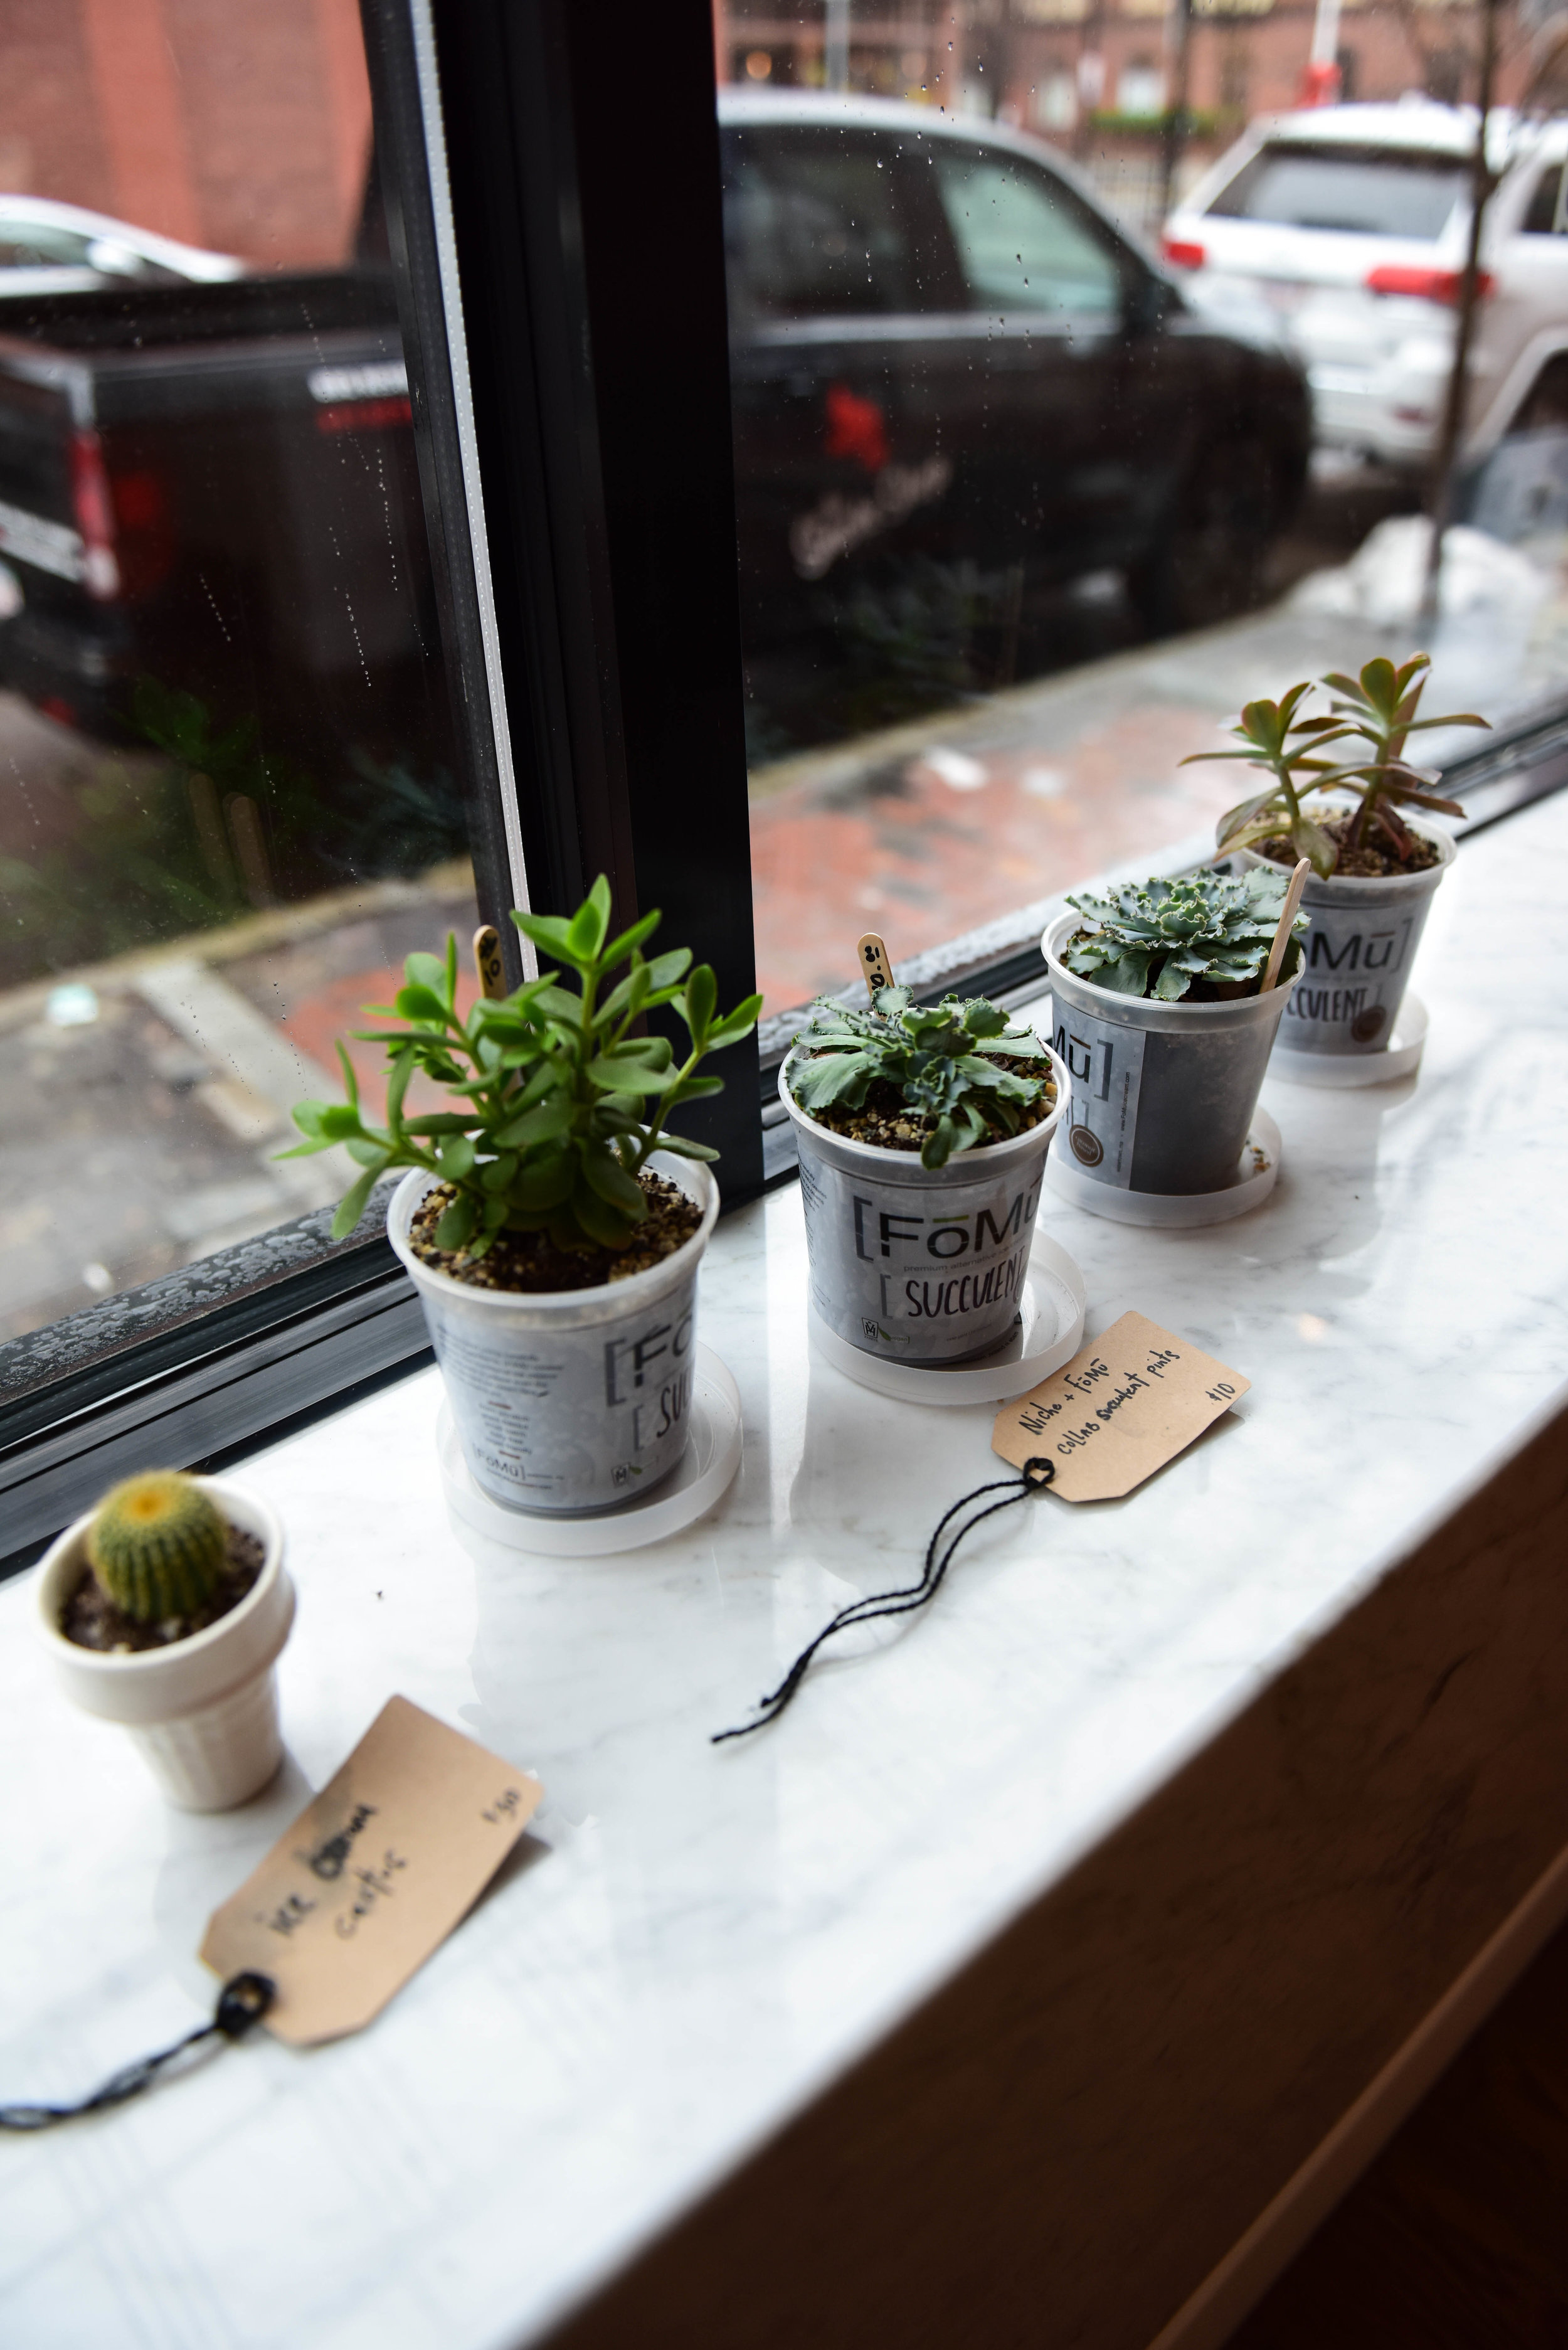 Speaking of local businesses, FoMu shared a pop-up space on Newbury Street last year with with a fellow women-owned business, Niche. The two companies both own shops on Tremont Street in the South End, and you can grab a little collaboration greenery from FoMu while you're picking up a pint.